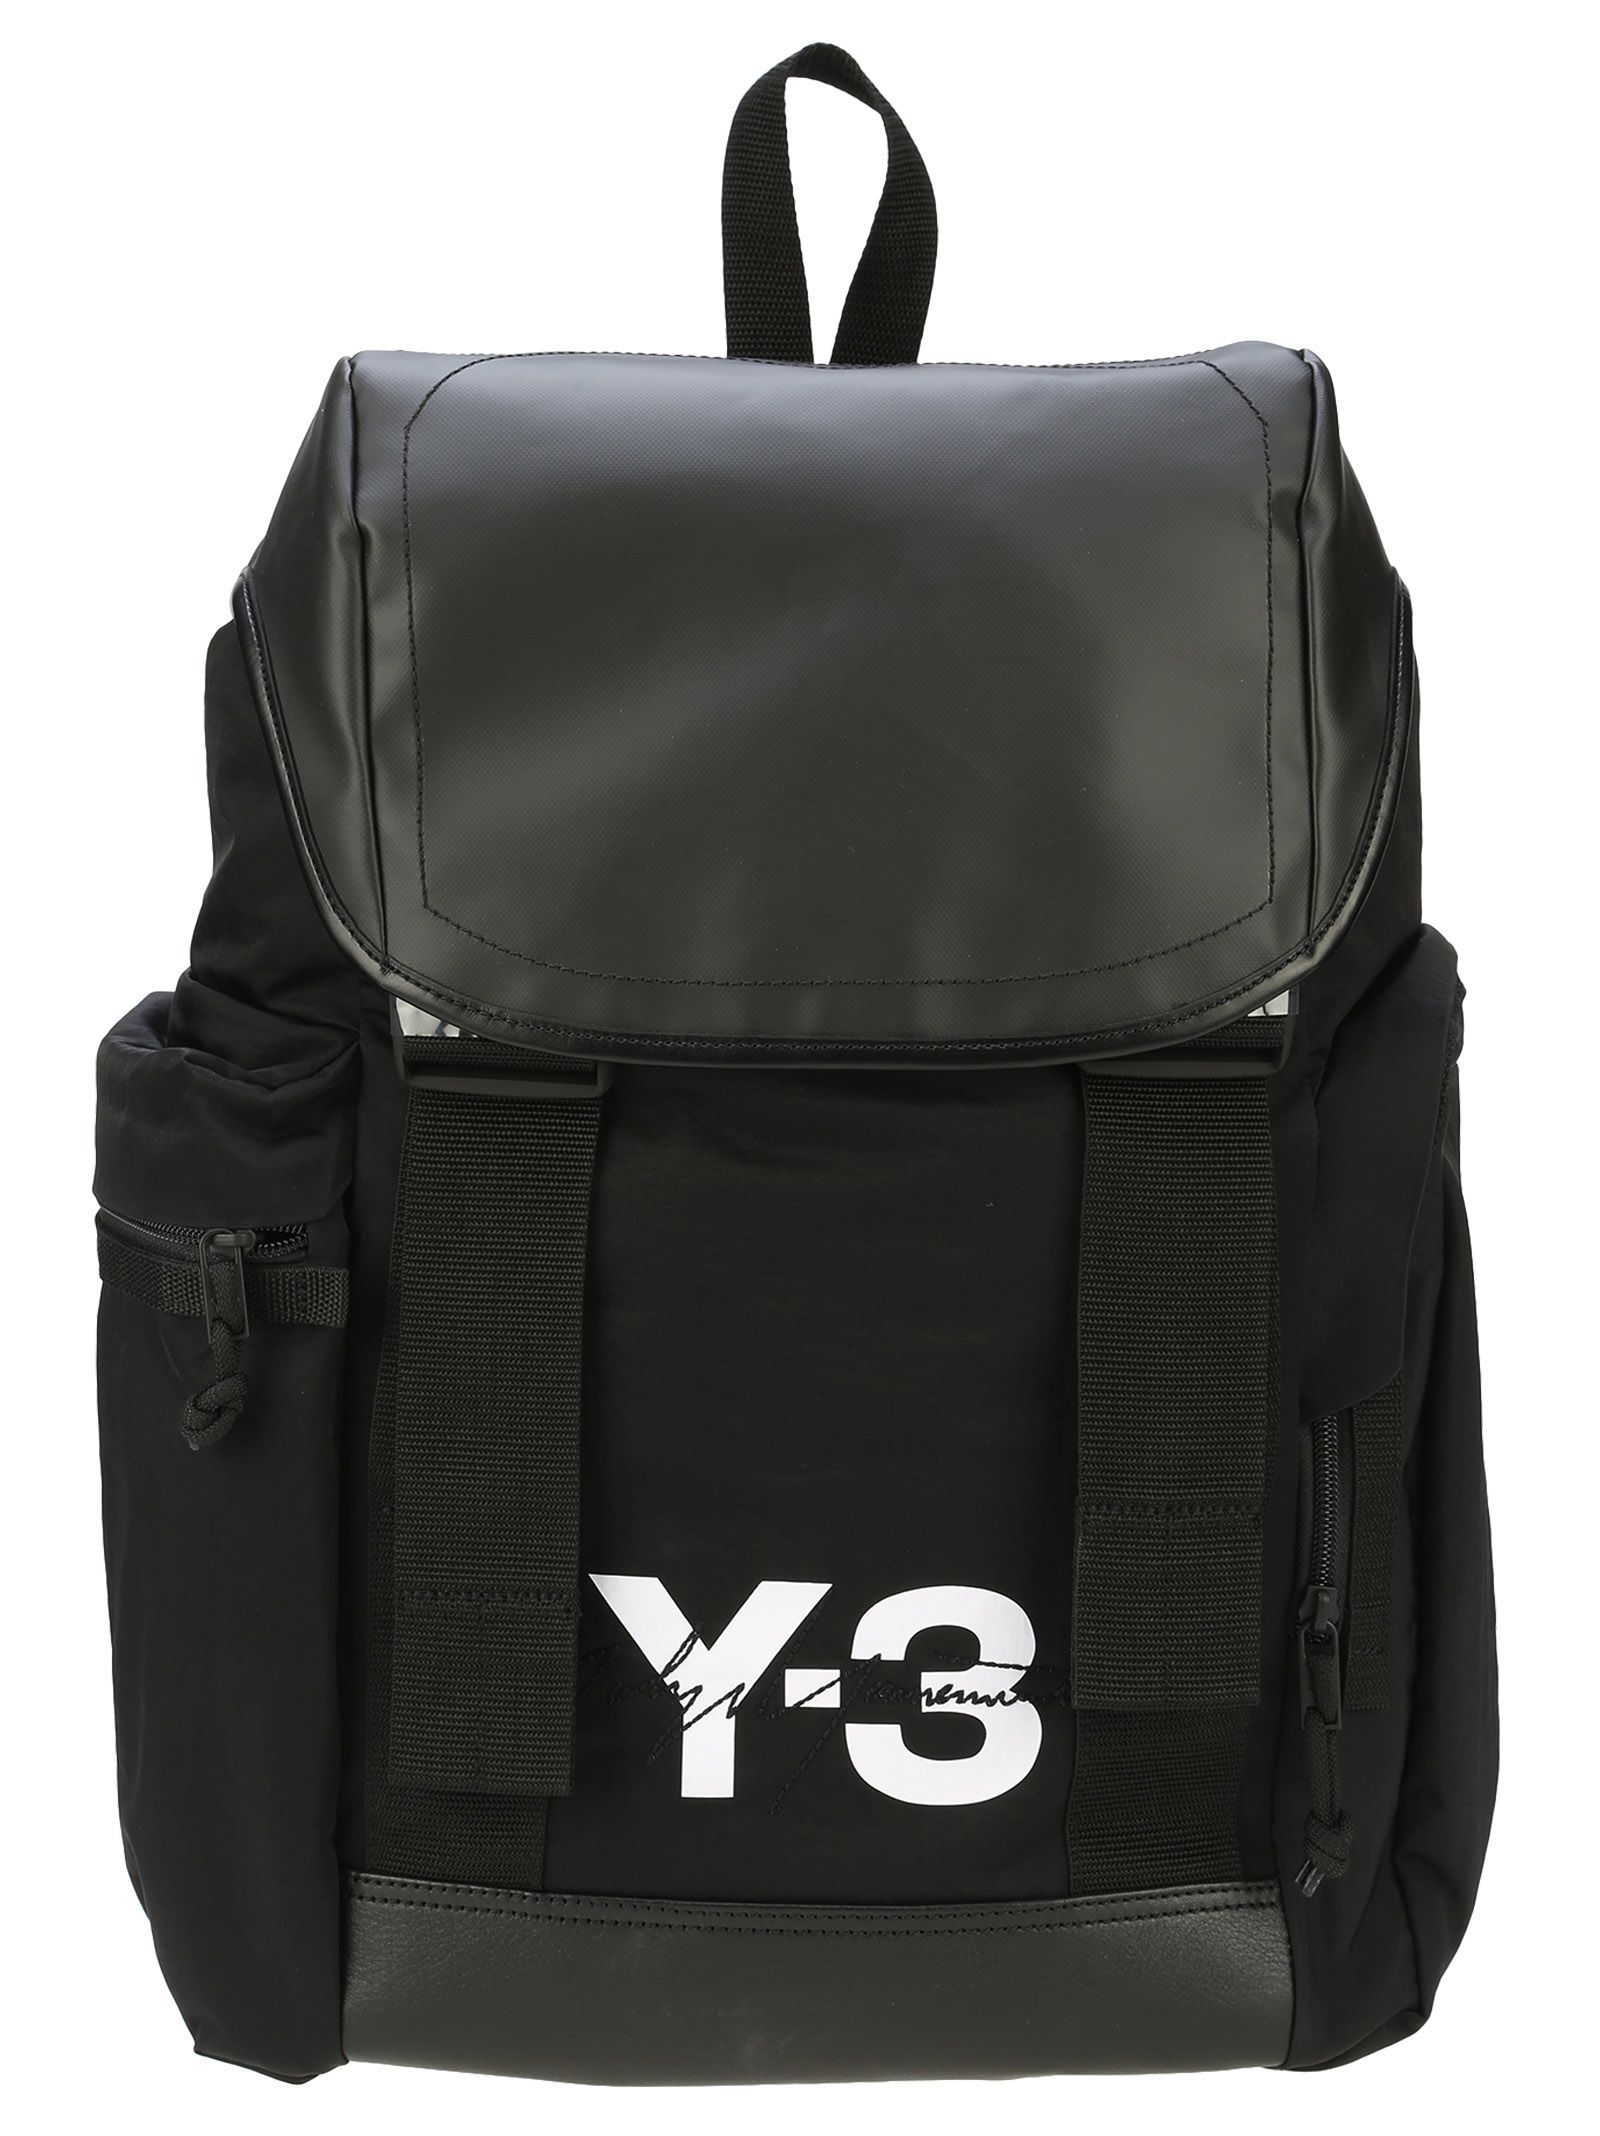 924c7e87a5de Y-3 ADIDAS Y3 BACKPACK.  y-3  bags  nylon  backpacks